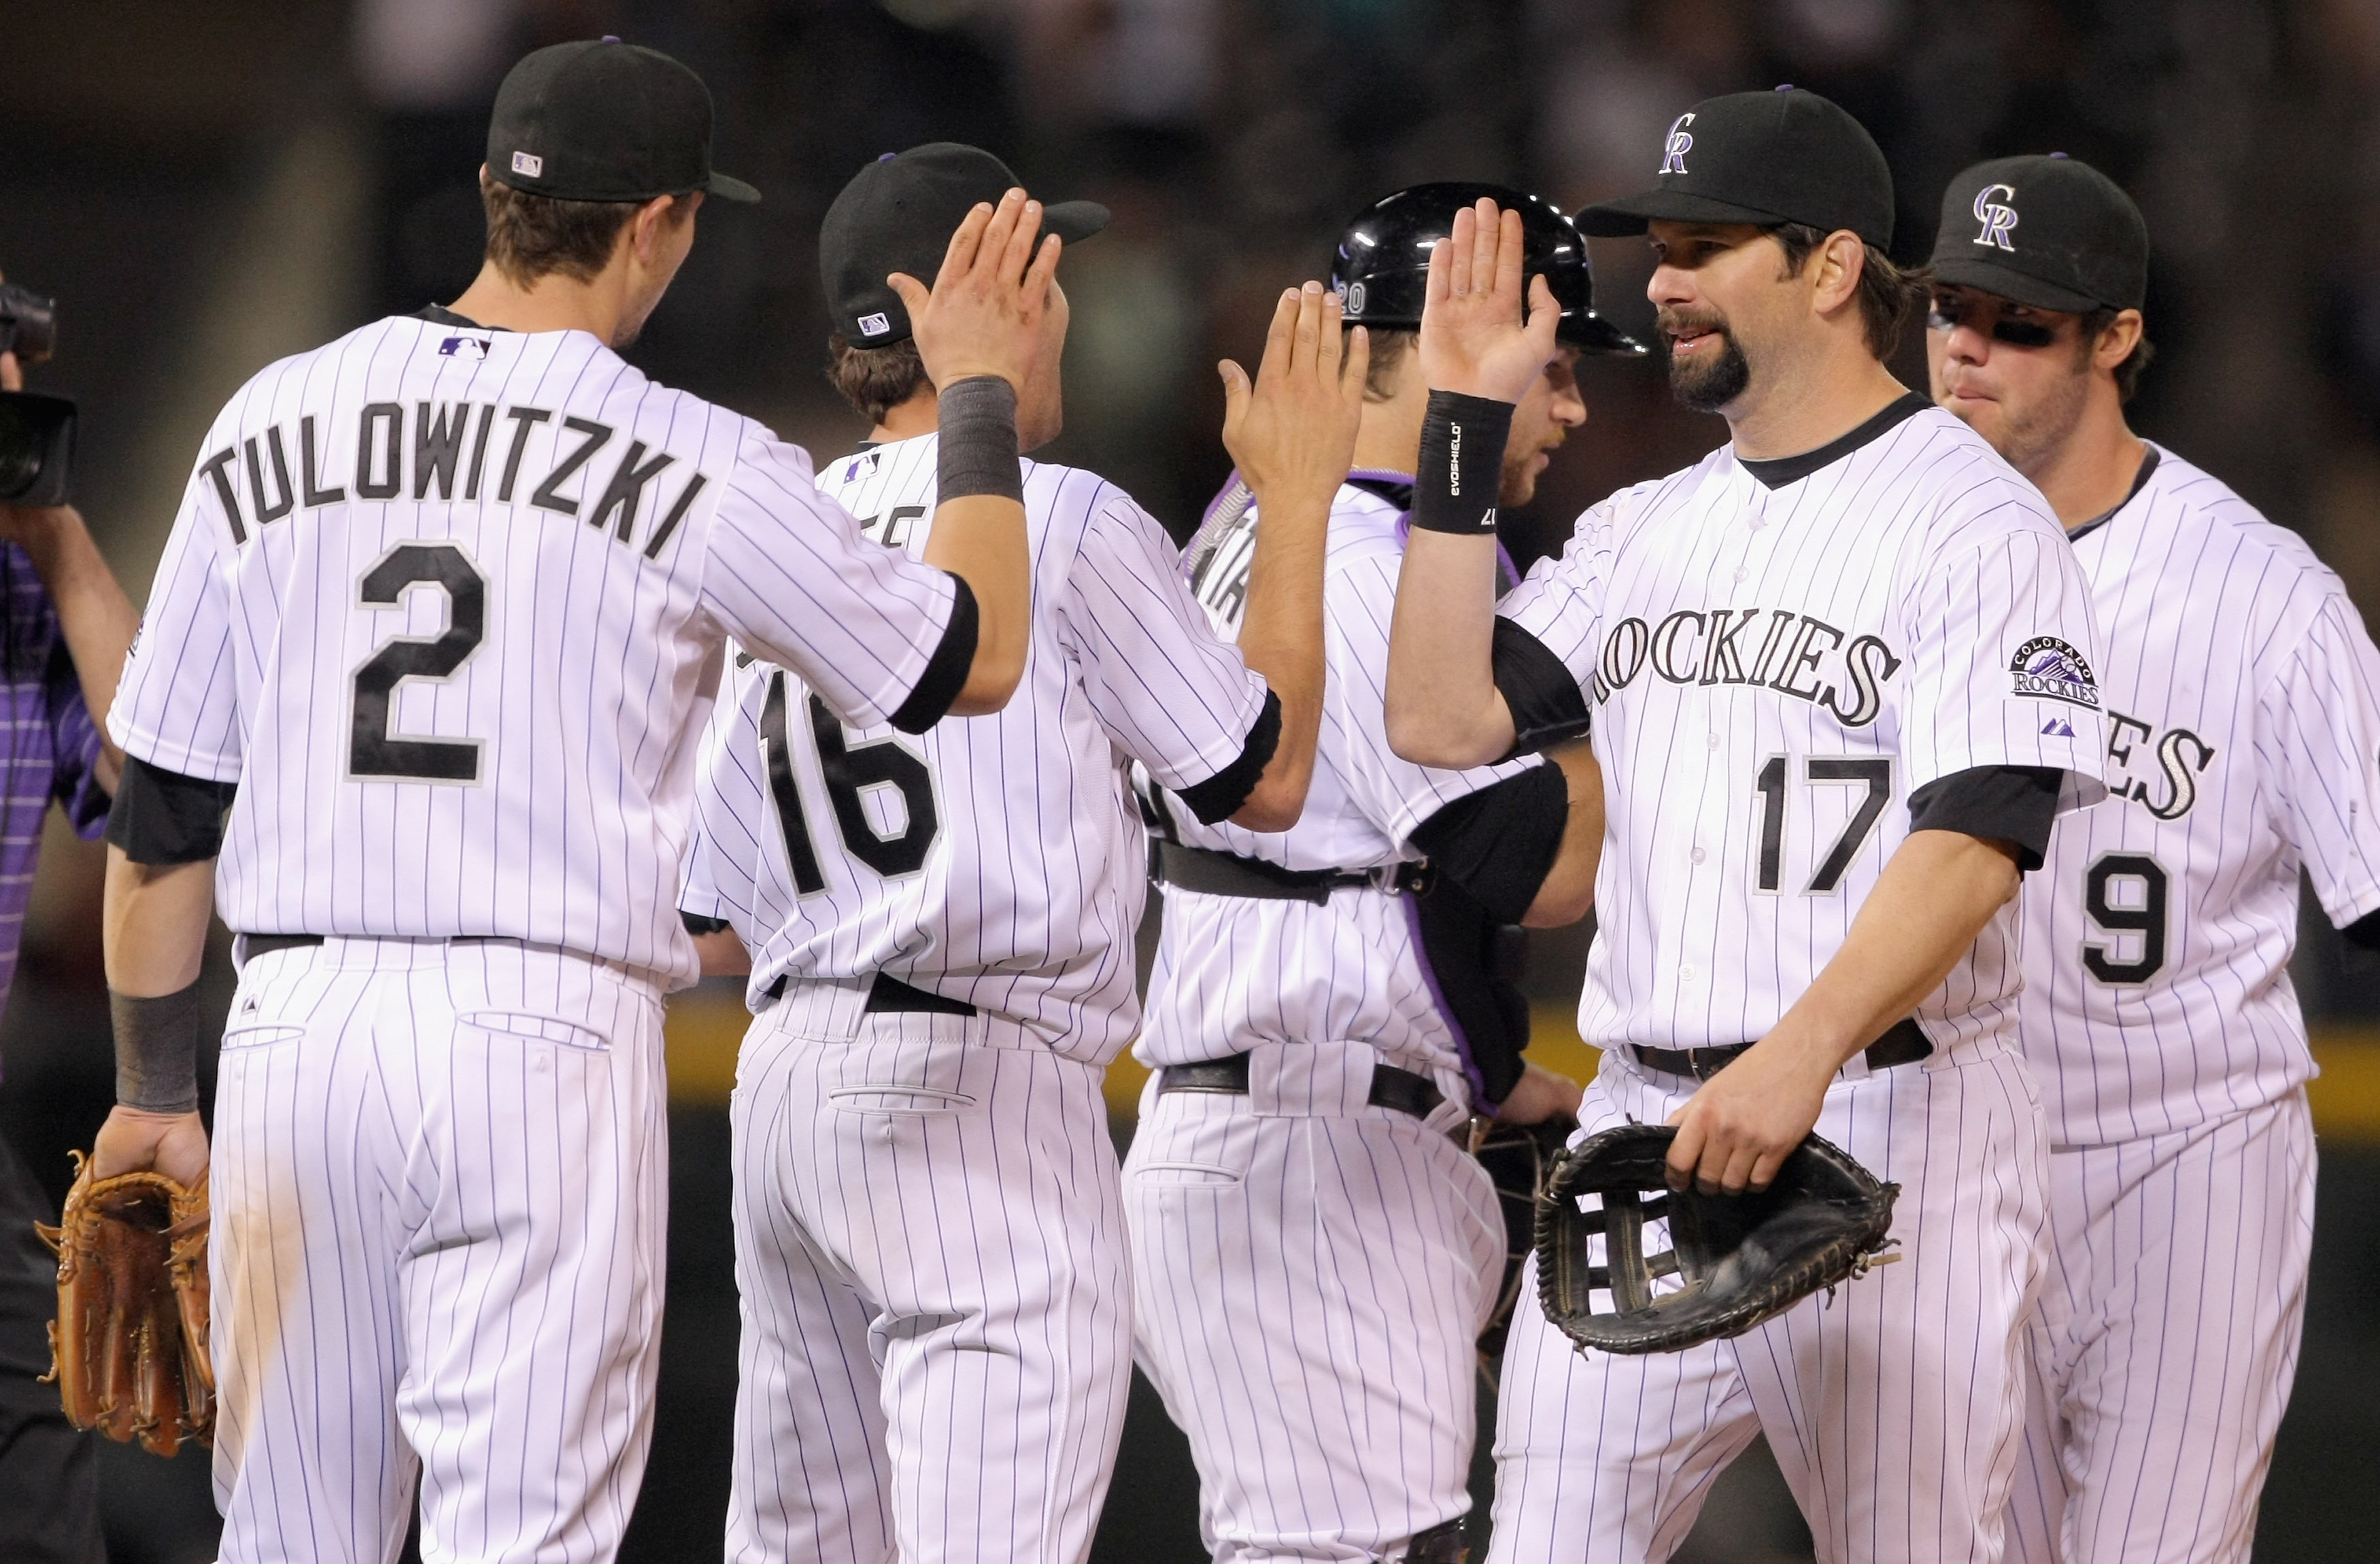 DENVER, CO - MAY 09:  Troy Tulowitzki #2, Huston Street #16, Chris Iannetta #20, Todd Helton #17 and Ian Stewart #9 of the Colorado Rockies celebrate after defeating the New York Mets 2-1 at Coors Field on May 9, 2011 in Denver, Colorado.  (Photo by Doug